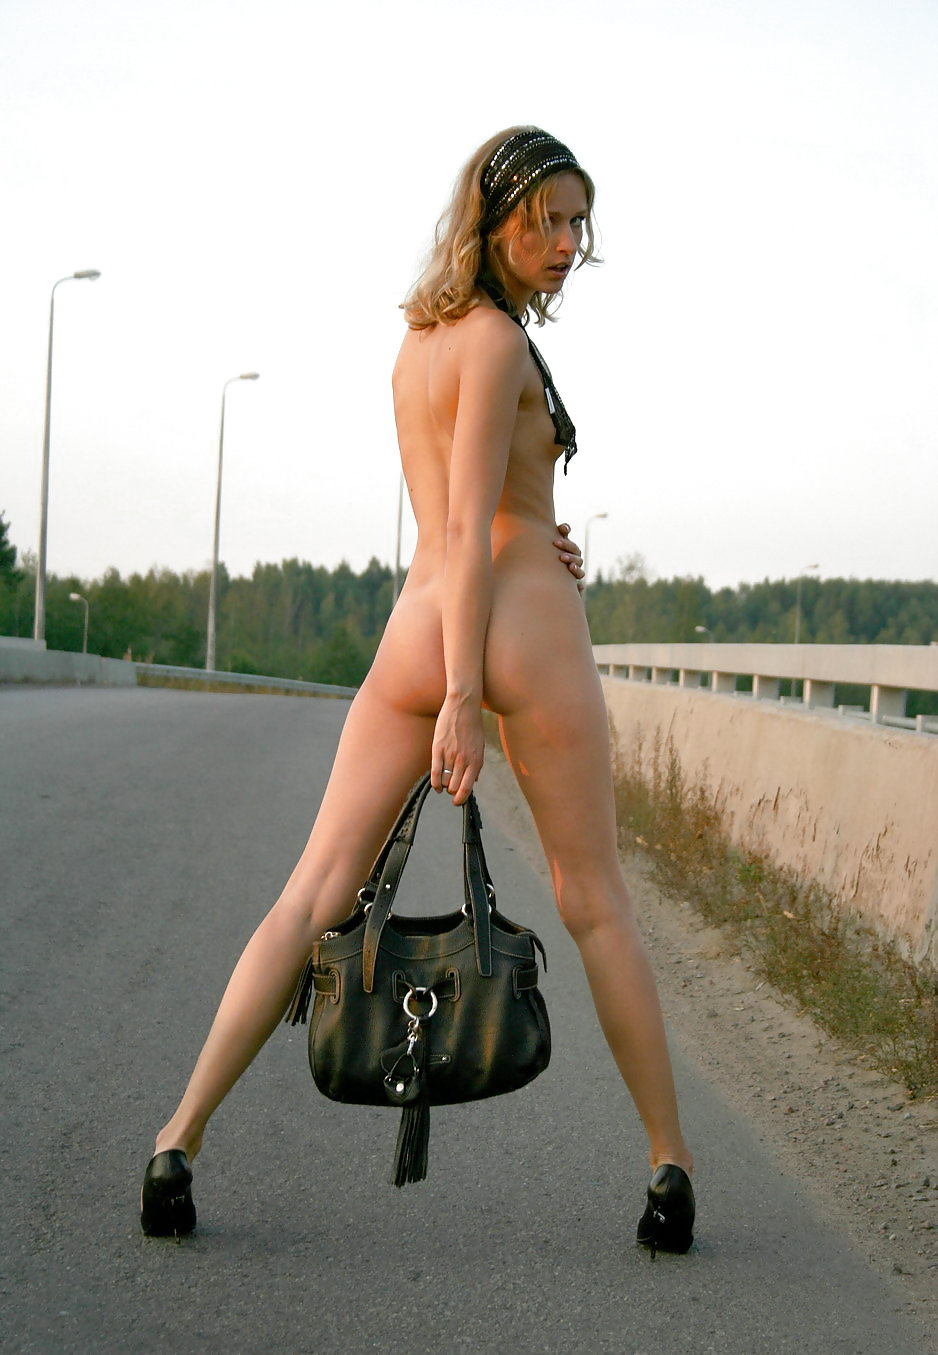 Nasty Teen Hitchhiker Flashing Pussy In Strangers Car